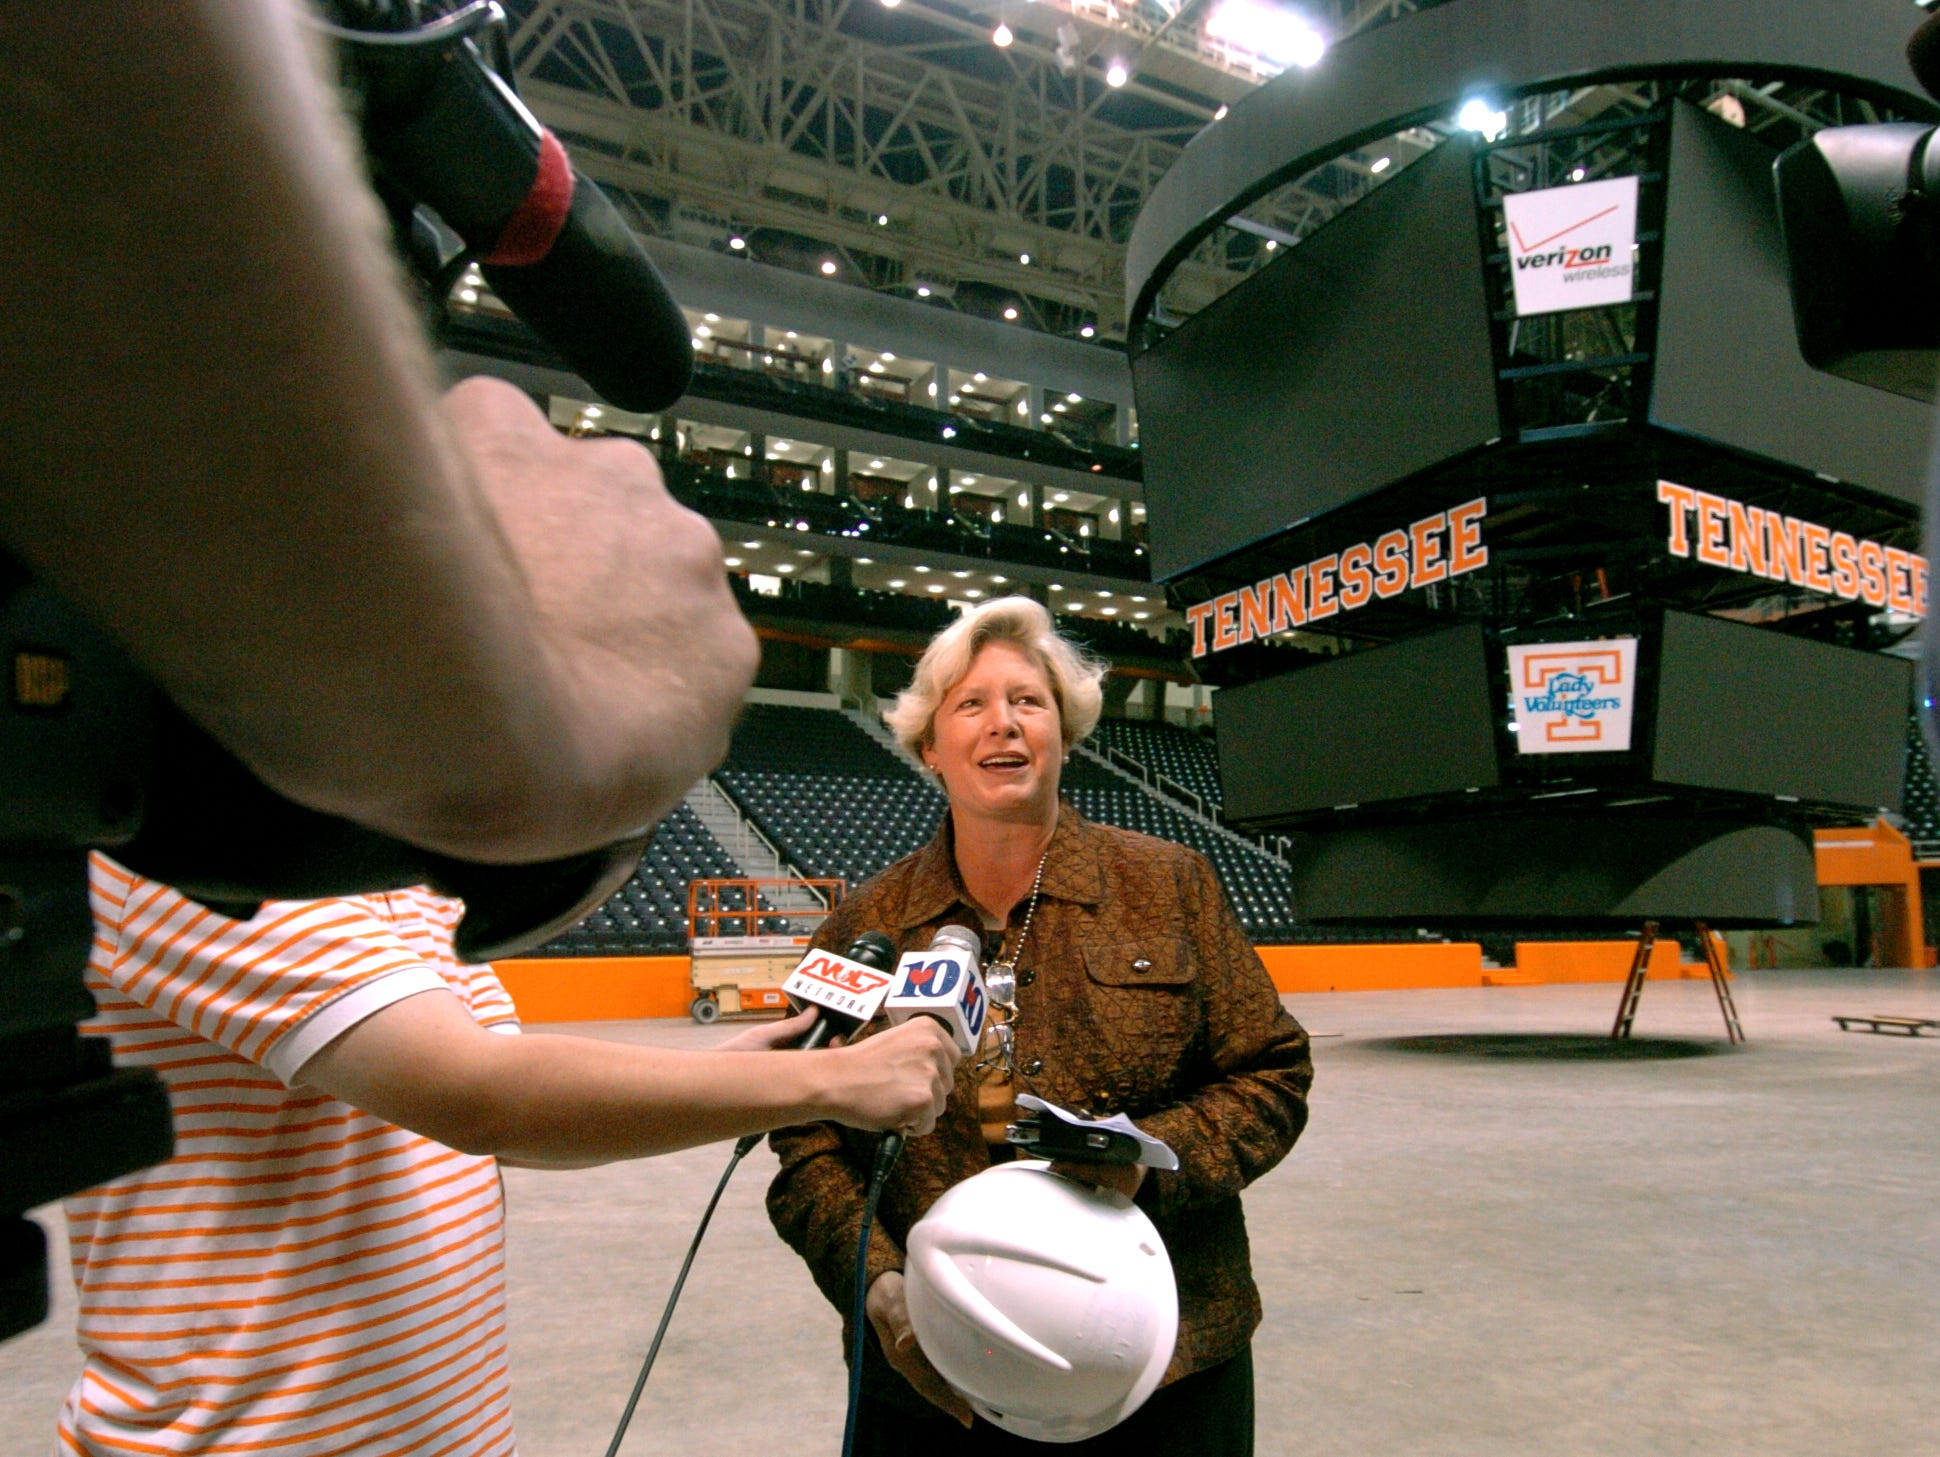 University of Tennessee Women's Athletics Director Joan Cronan prepares for an interview during a tour on Wednesday of the new Pratt Pavilion and remodeled Thompson-Boling Arena. A new $3 million scoreboard   and new luxury boxes are in the background.